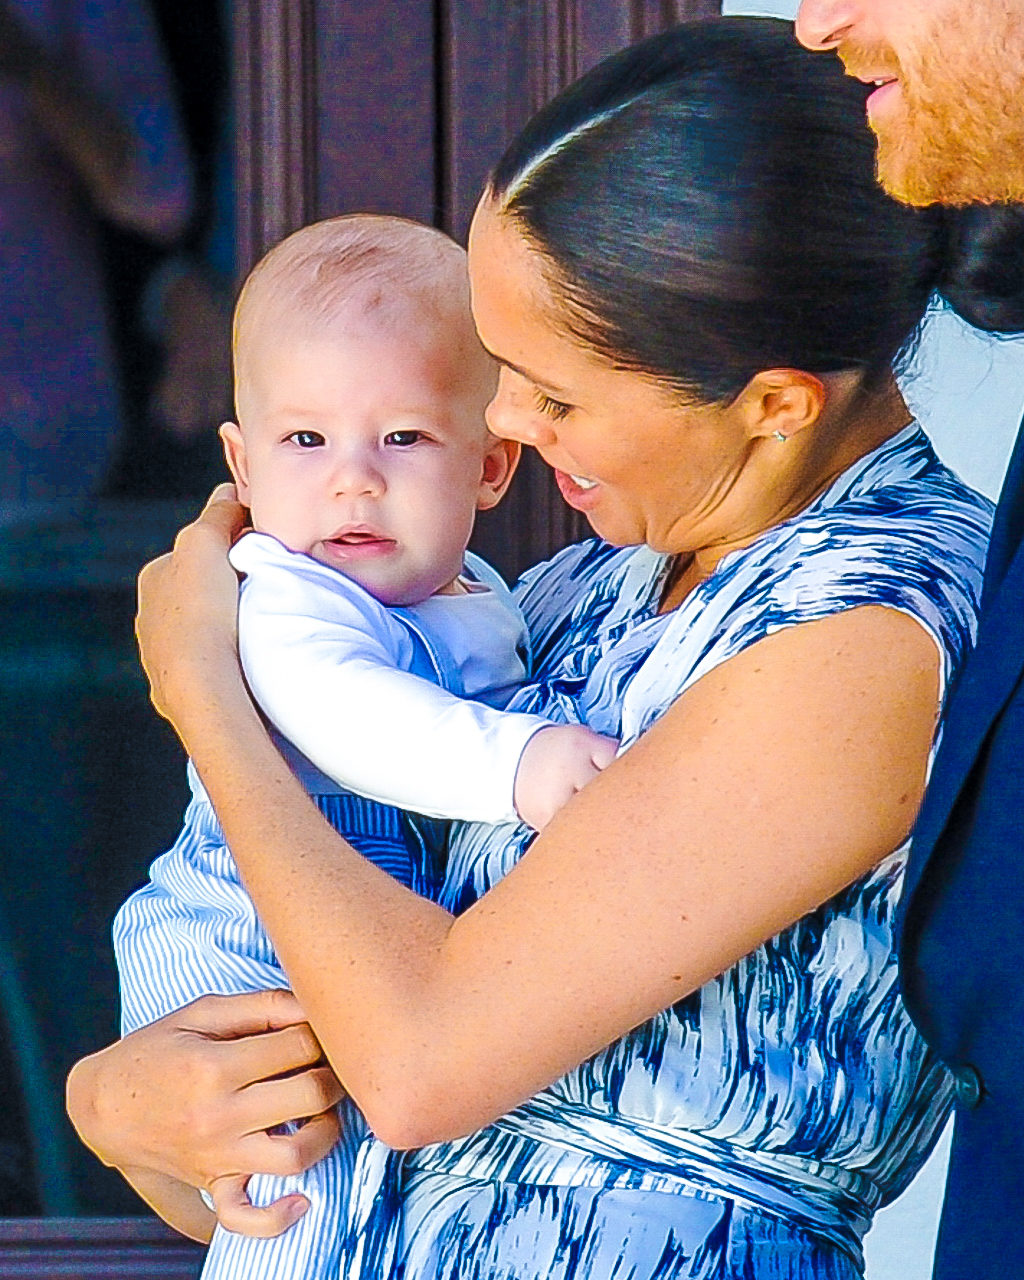 """The Prince Harry office has confirmed that he and his family will be spending """"private time"""" in Canada over the Christmas holidays. Harry, his wife Meghan and their 7-month-old son Archie will miss Queen Elizabeth II's traditional Christmas gathering at the Sandringham estate. Palace officials Friday night confirmed Harry's family is in Canada but did not provide details. Meghan lived in Canada for many years before she married Harry while she was filming the TV series """"Suits."""" (Photo by DPPA/Sipa USA)"""